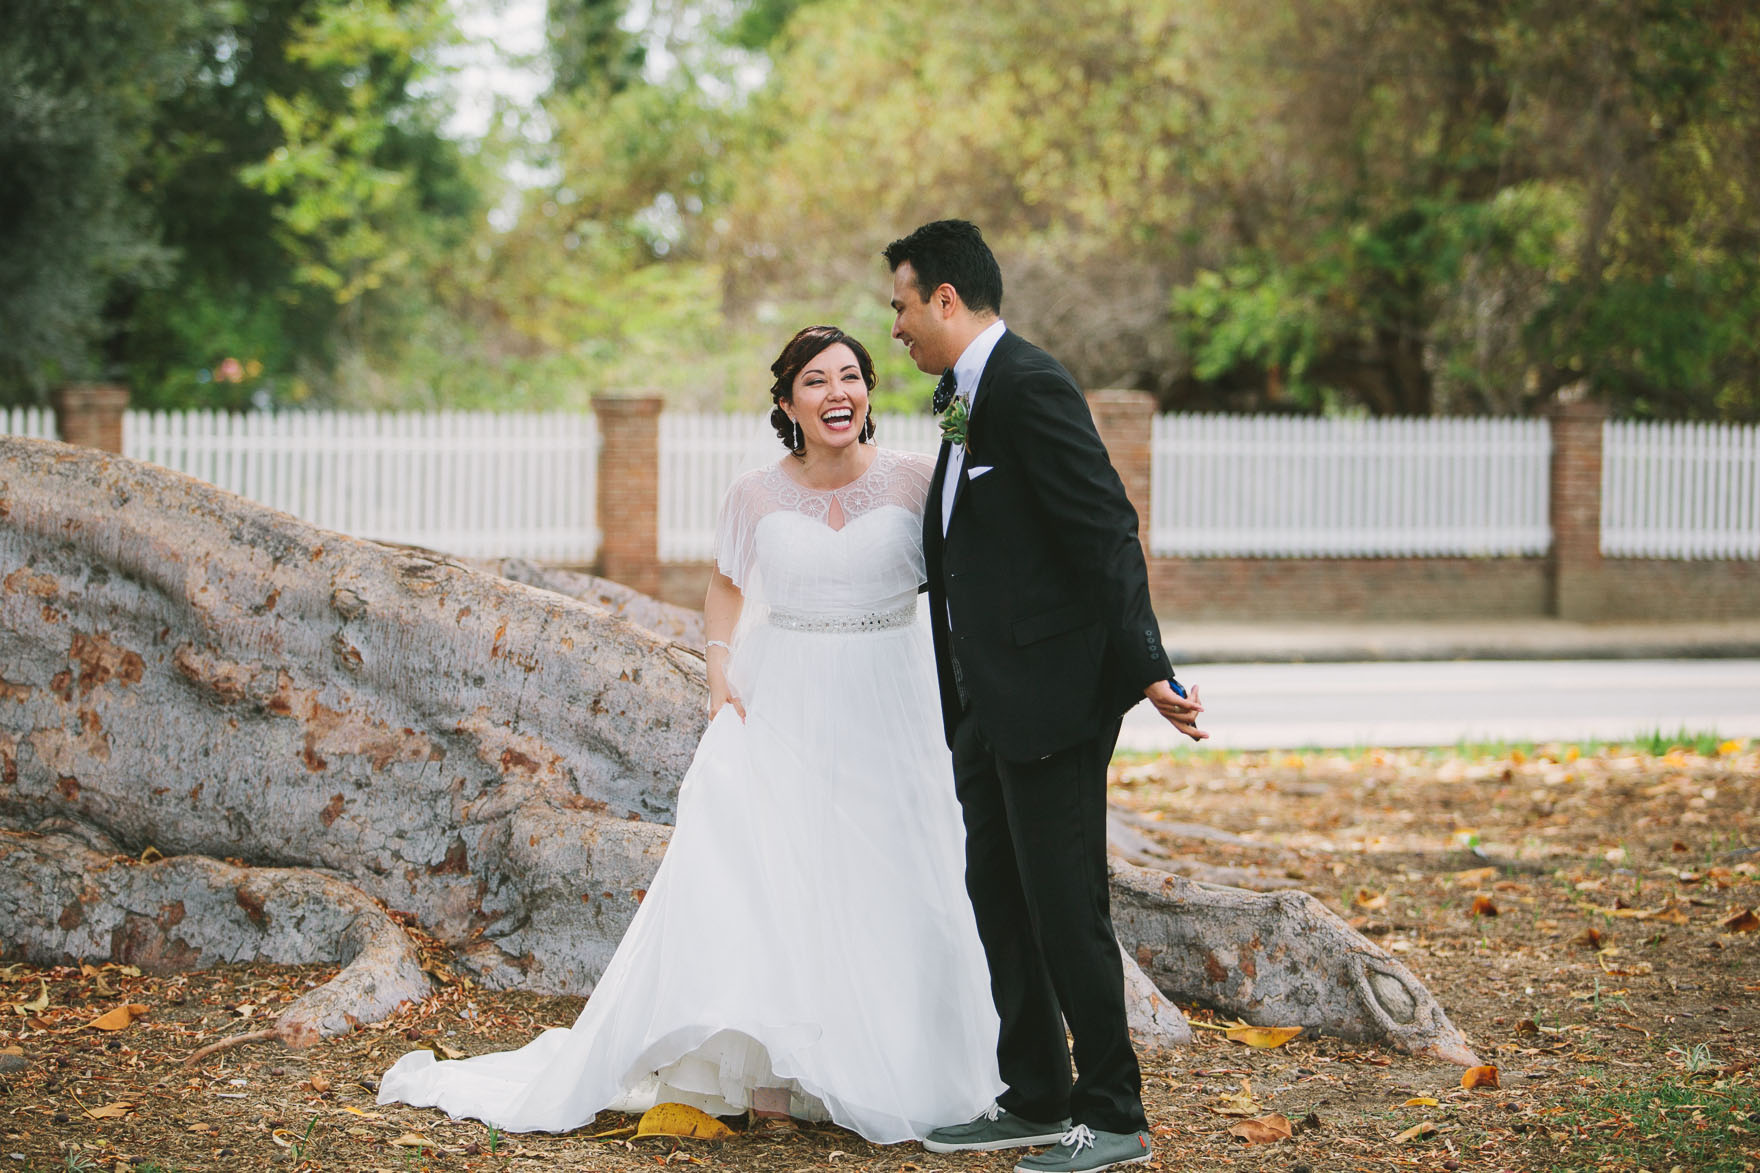 Classic & Vintage California Union – Photo by Let's Frolic Together